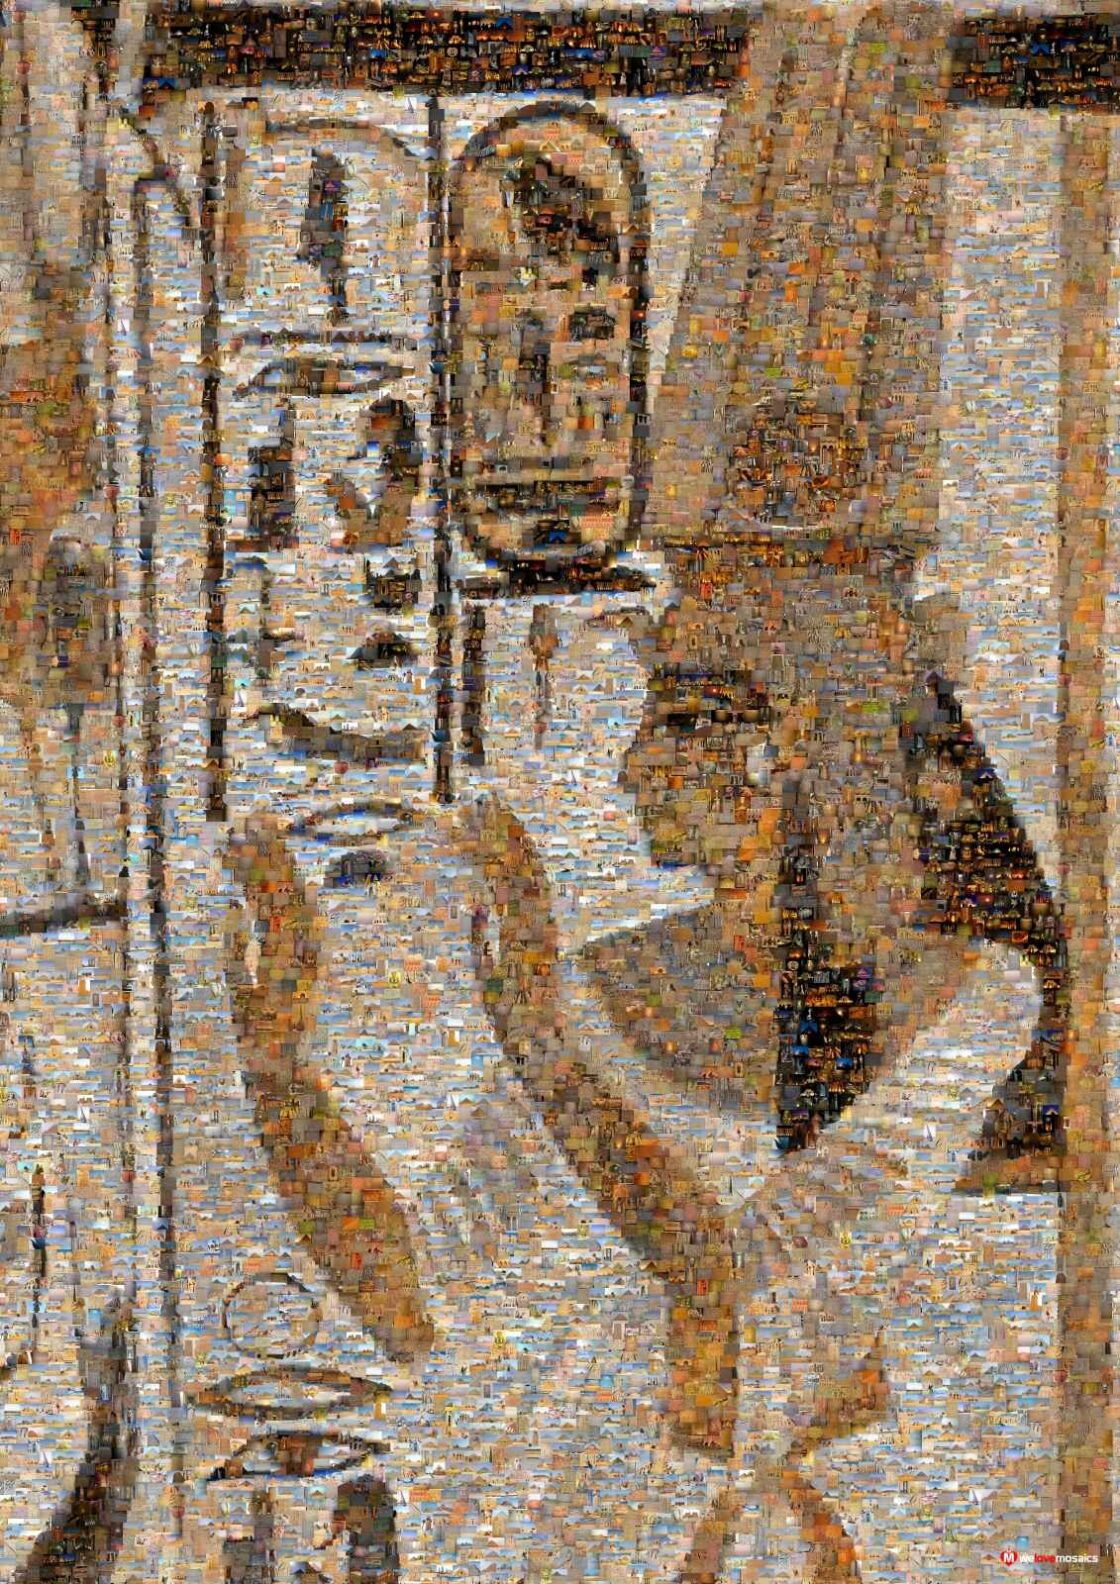 Hieroglyphs were rediscovered and deciphered after archaeologists found the Rosetta Stone. Amazing artwork!